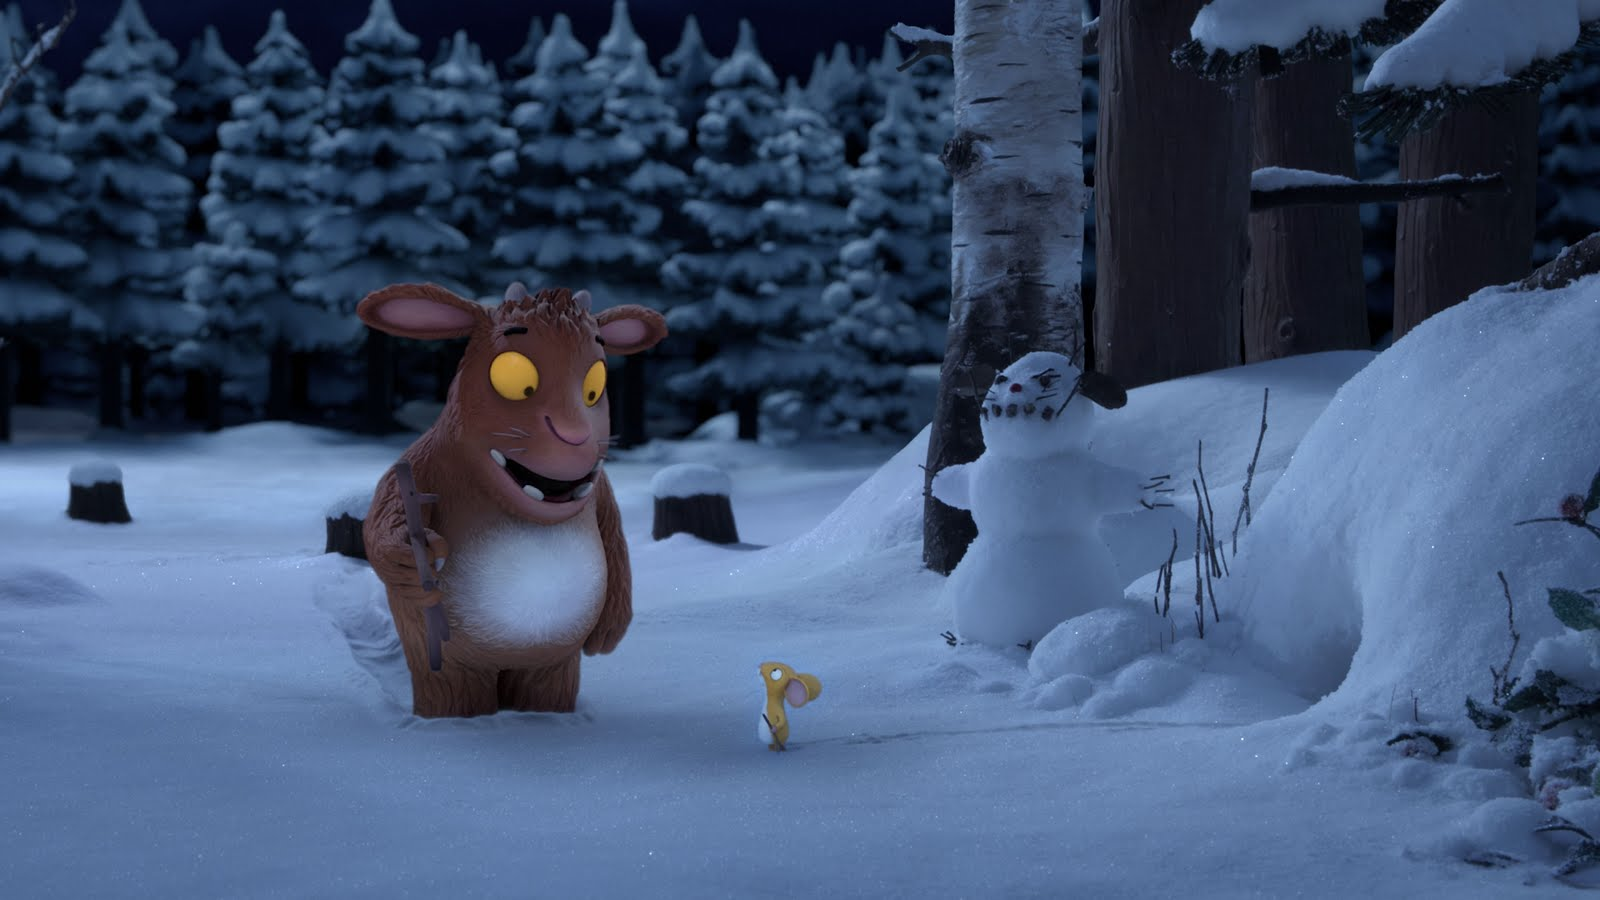 The Gruffalo´s Child and the mouse